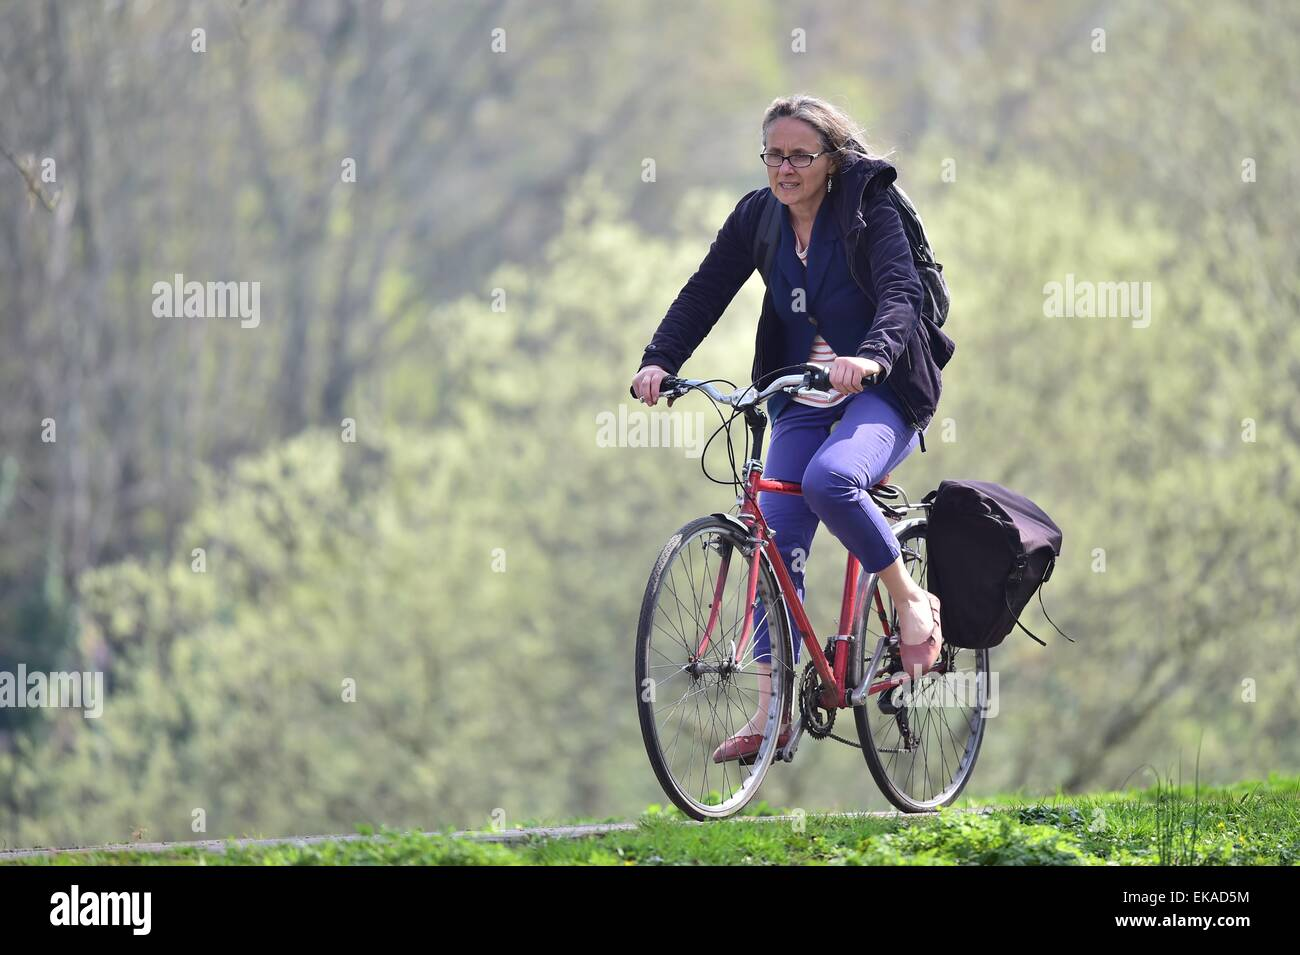 Female cyclist rides bike on the Taff Trail in Cardiff, South Wales, during warm sunny weather. - Stock Image